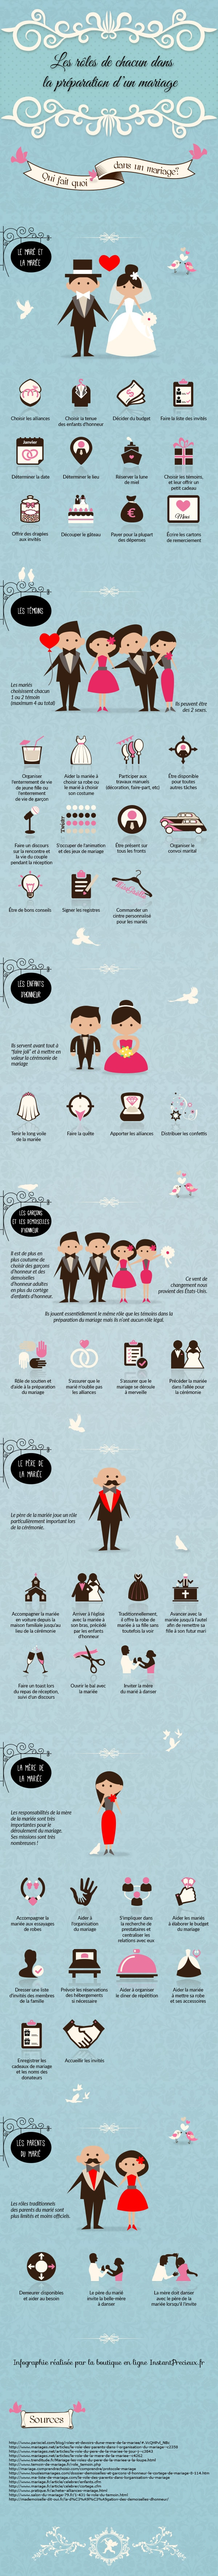 infographie mariage